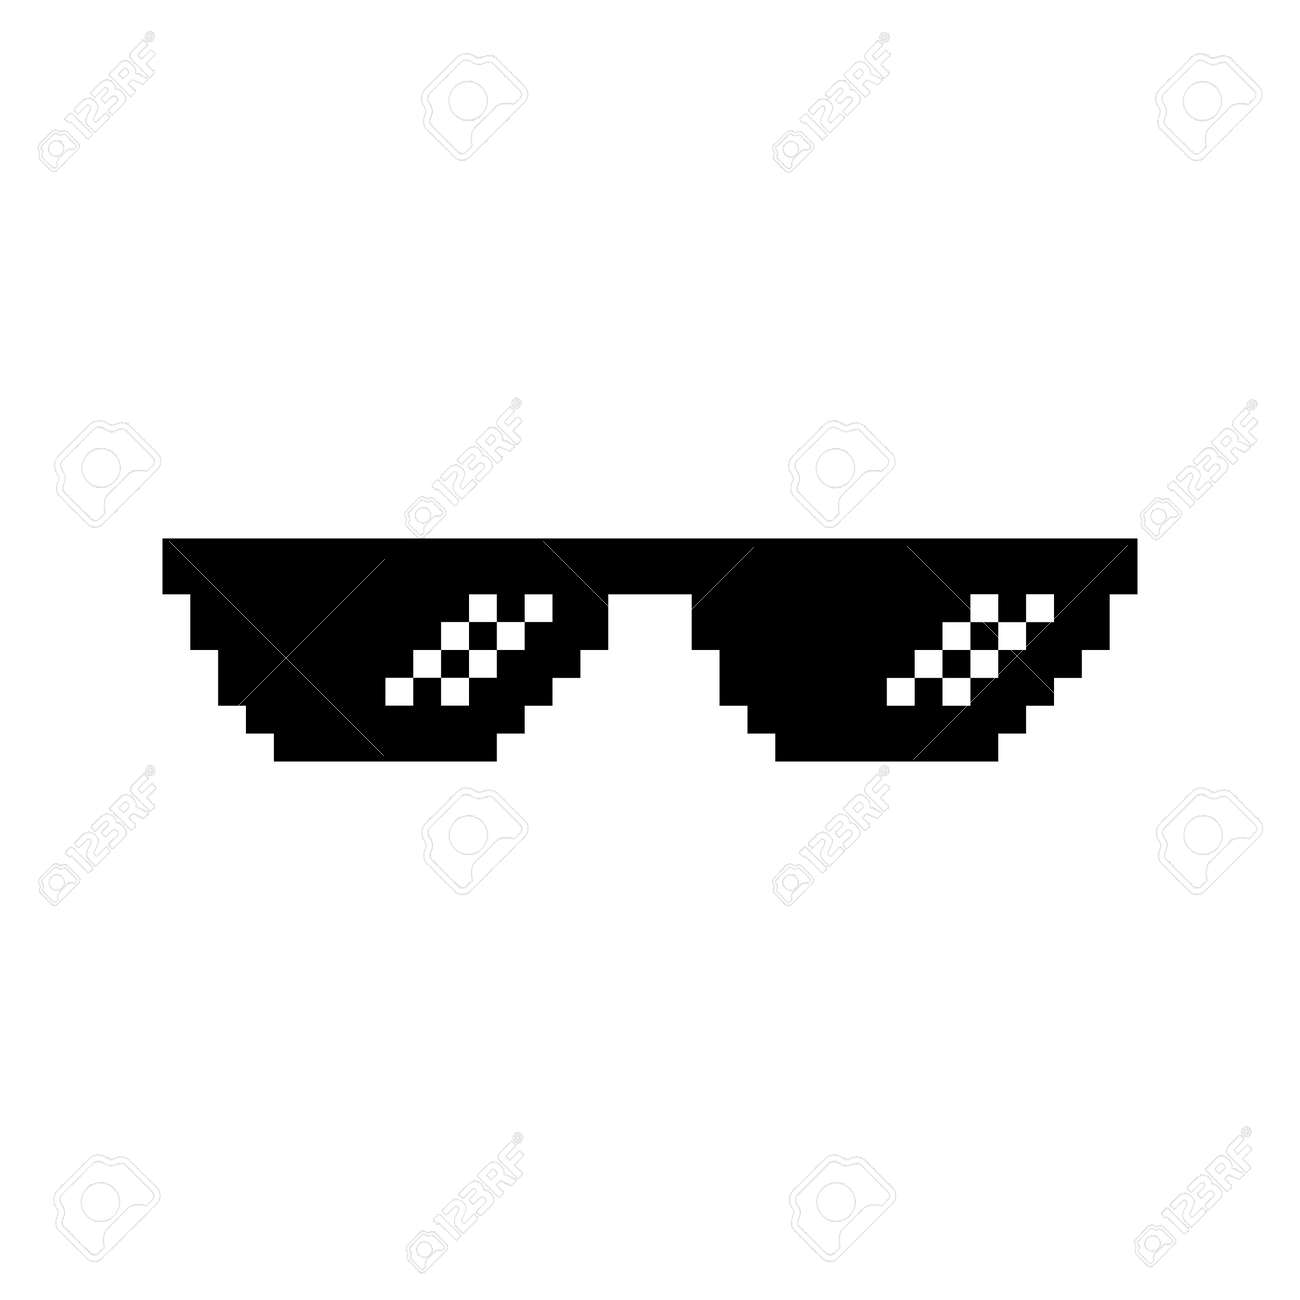 Creative vector illustration of pixel glasses of thug life meme